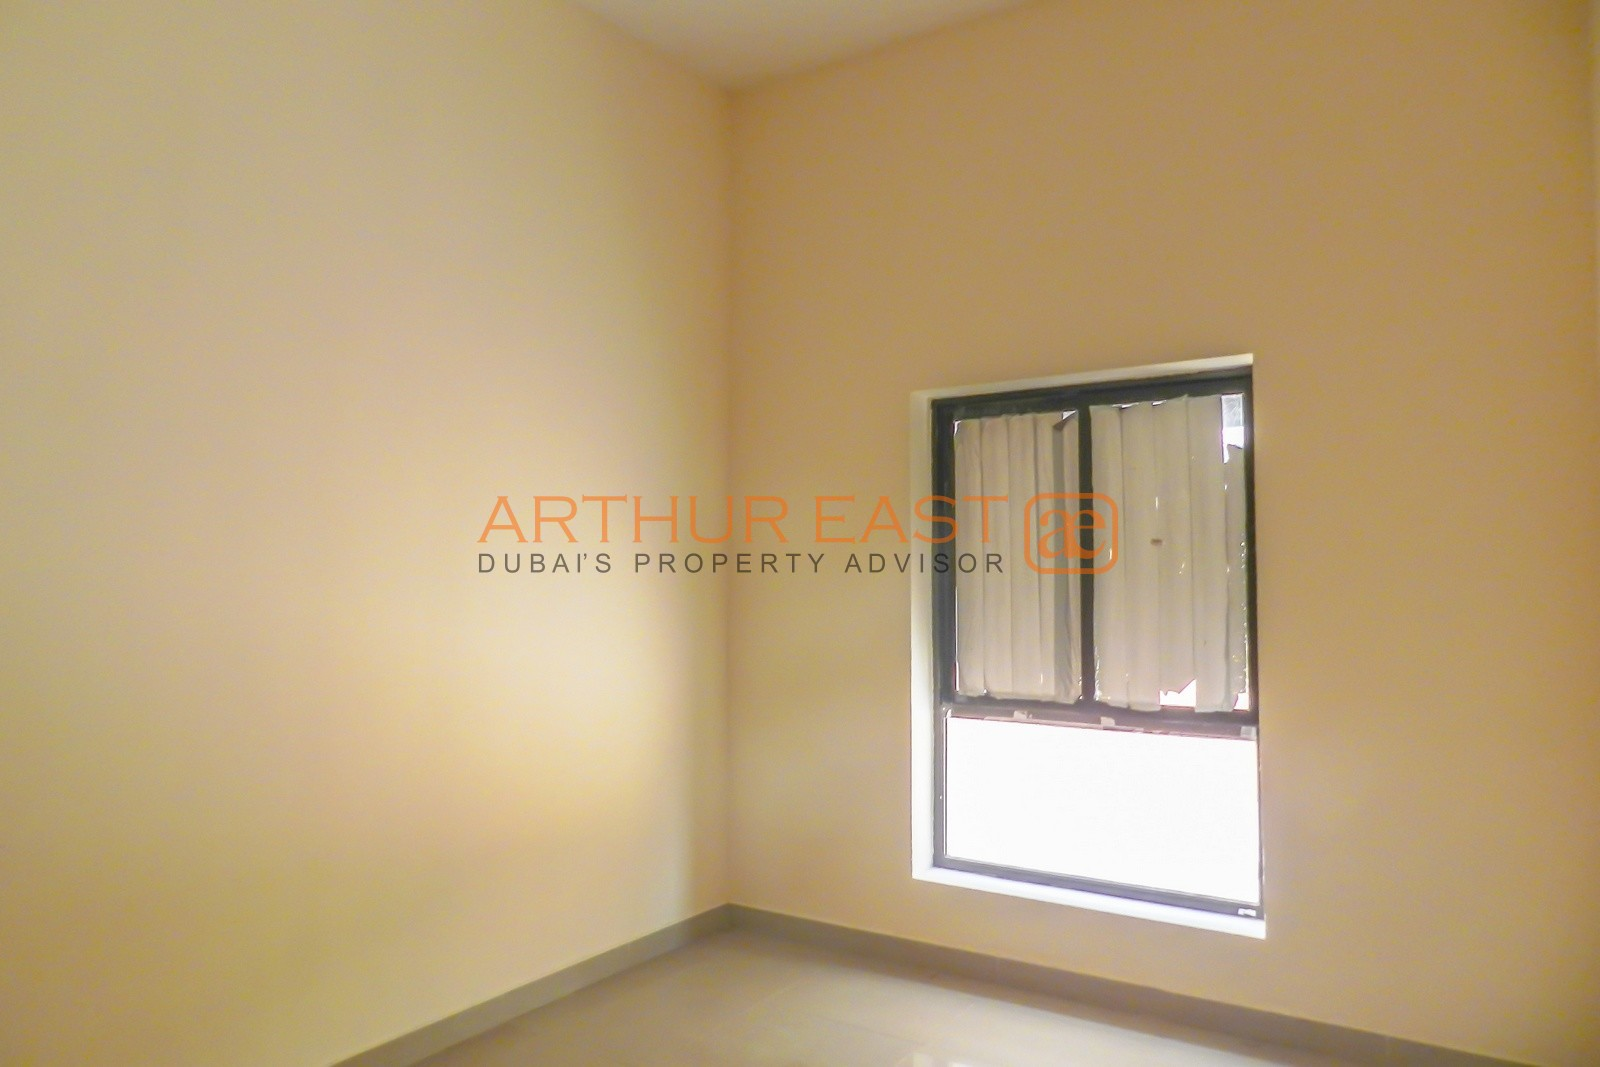 6-pax-roomat-aed2500-available-in-sonapur